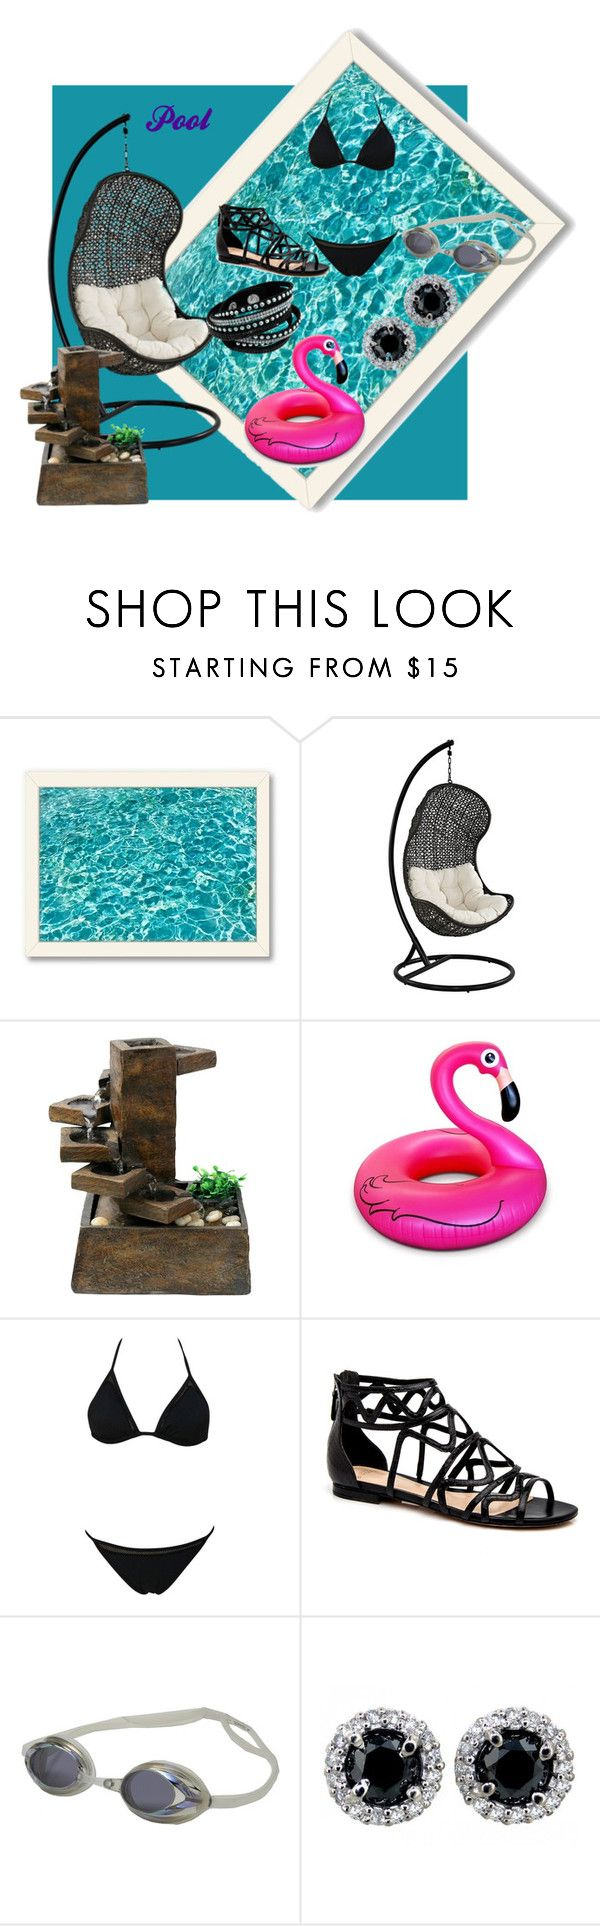 """Pool"" by o0kitten0o on Polyvore featuring Americanflat, Alpine, Big Mouth, Speedo, women's clothing, women, female, woman, misses and juniors"